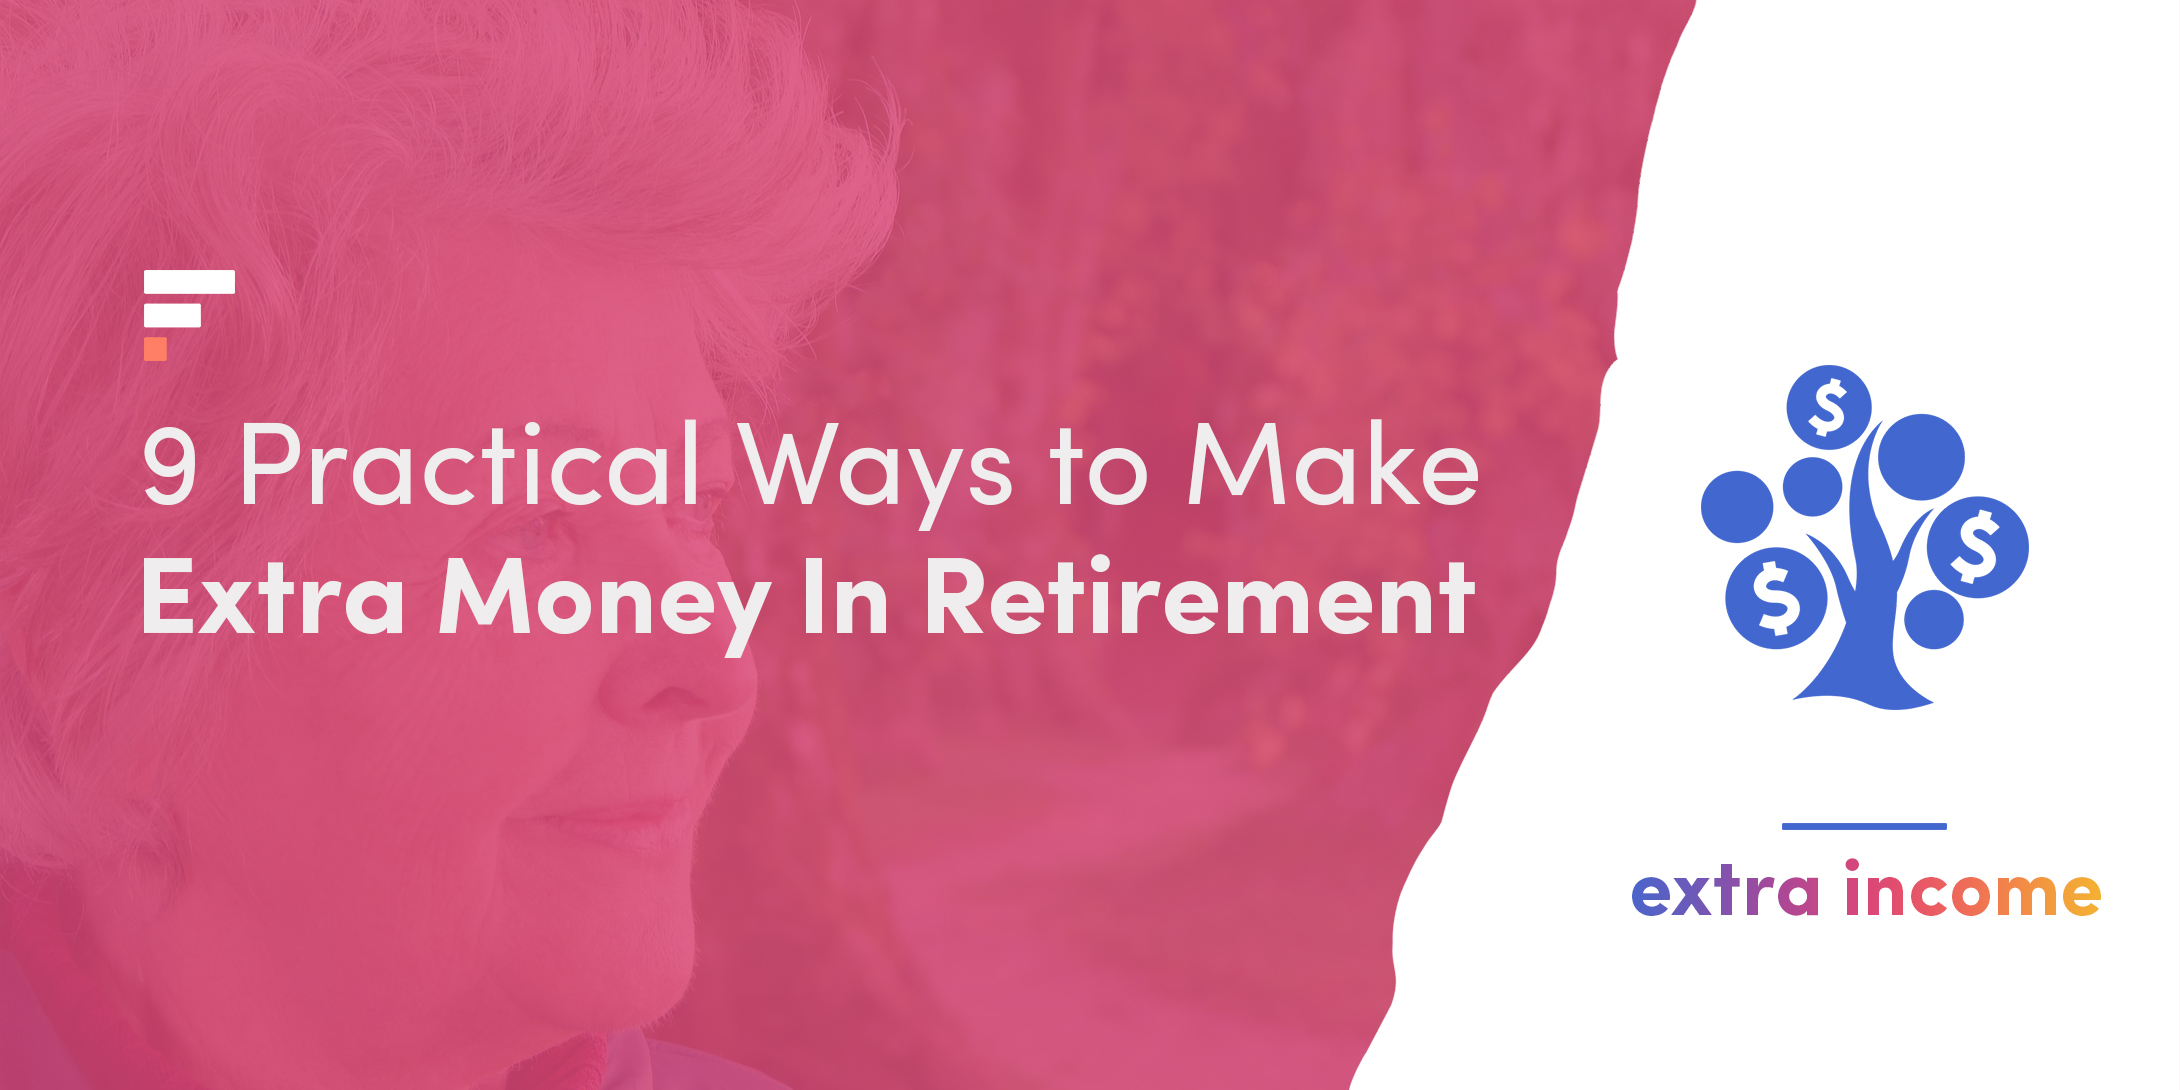 9 Practical Ways to Make Extra Money In Retirement